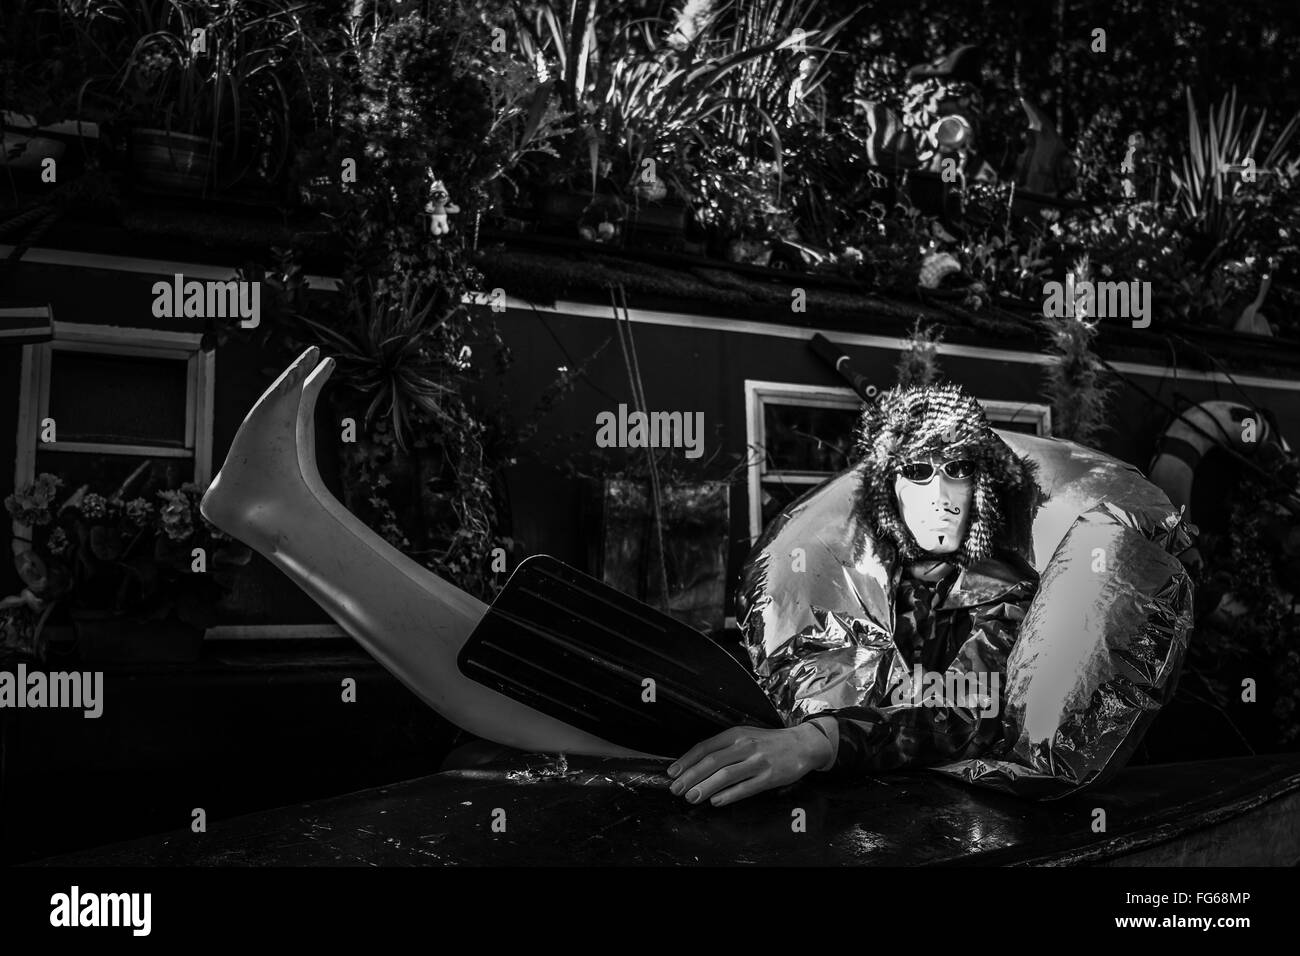 Mannequin In Back Yard - Stock Image